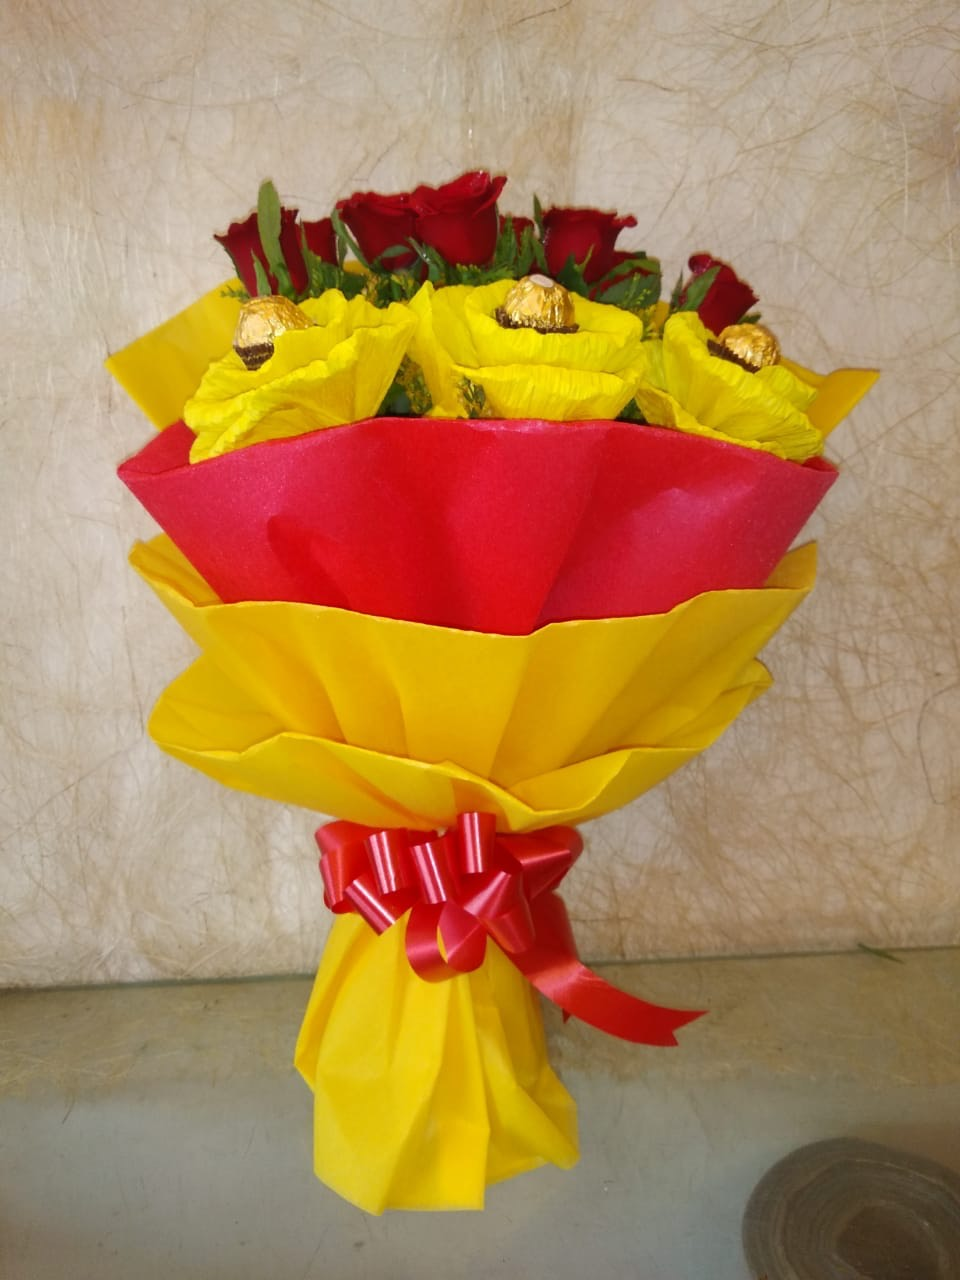 Flowers Delivery in Sector 38 GurgaonRed Roses Ferrero Rocher Bunch